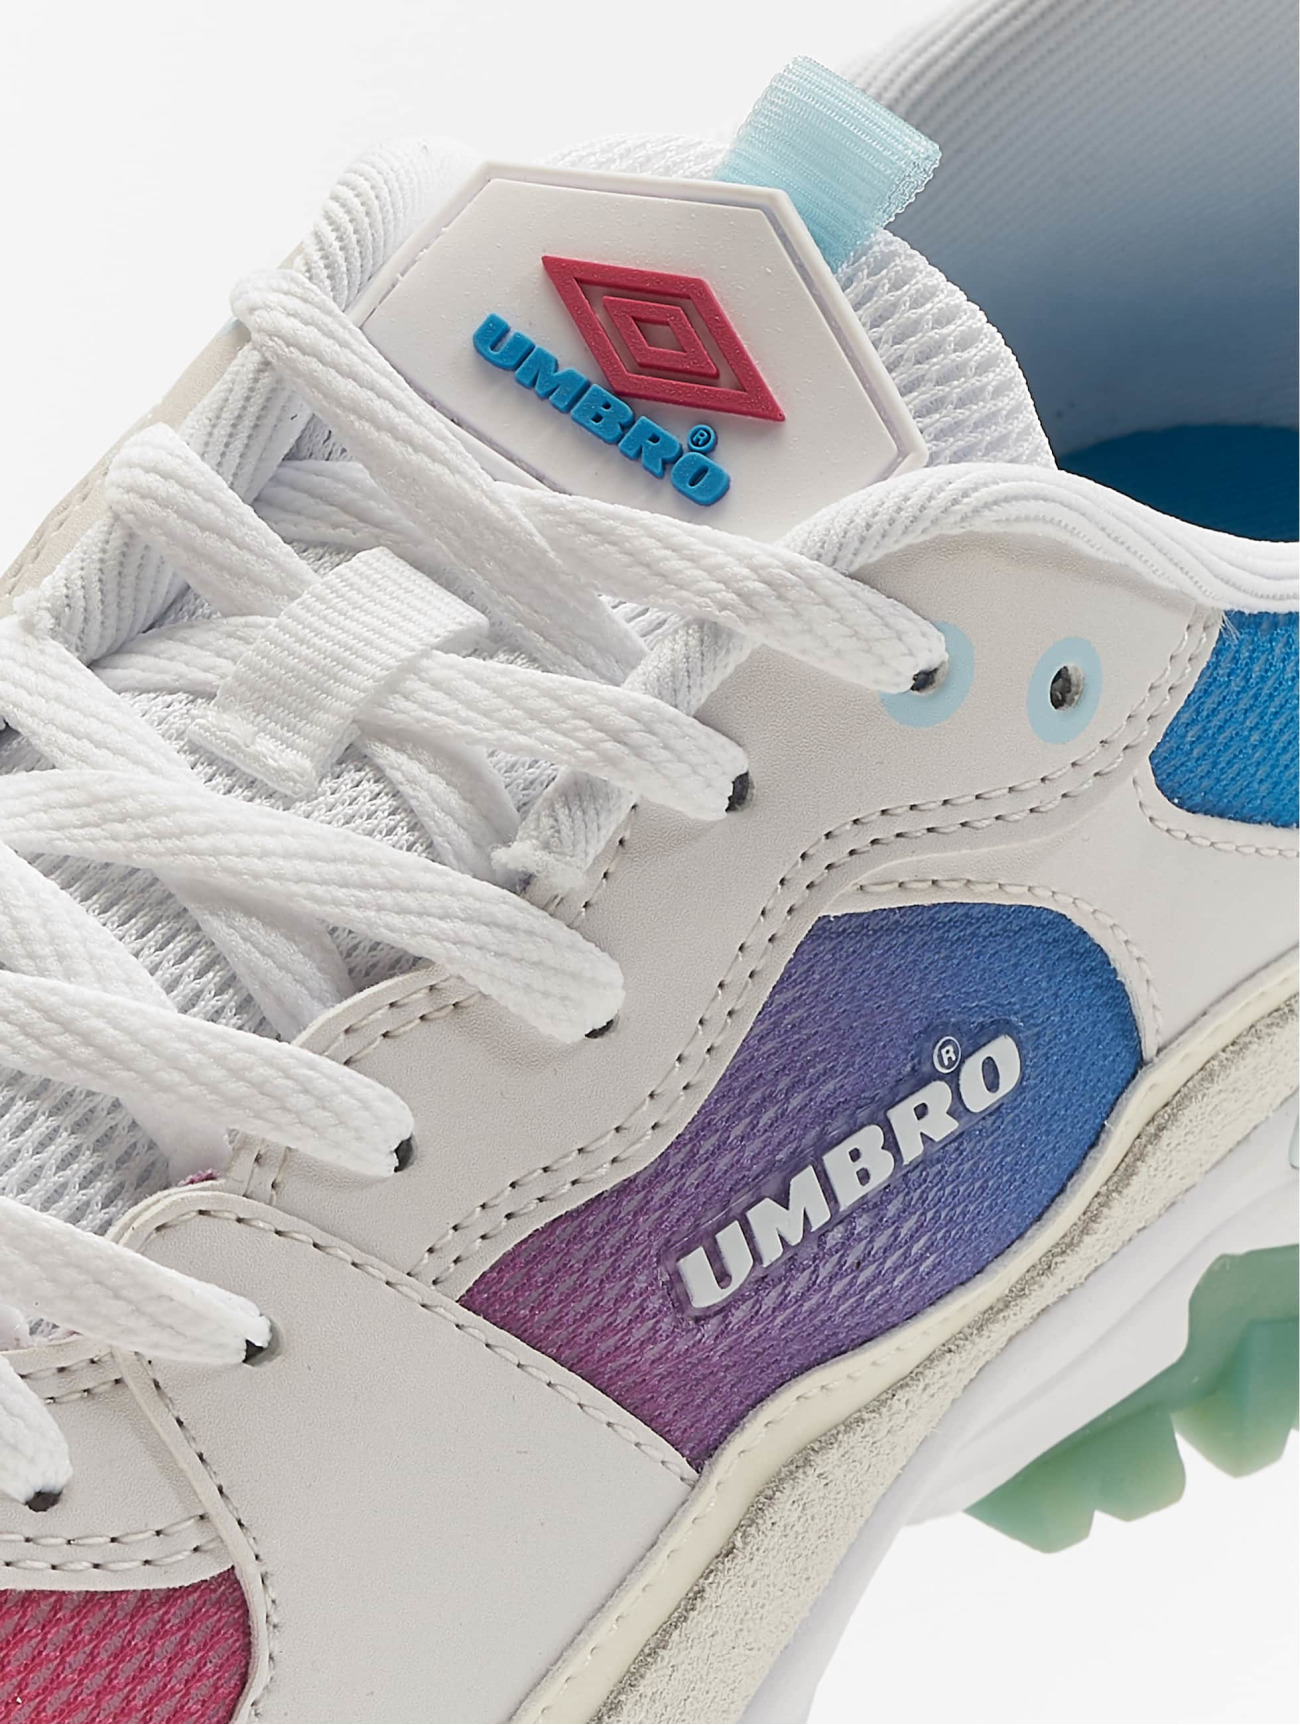 Umbro Bumpy blanc Baskets 673479 Homme Chaussures